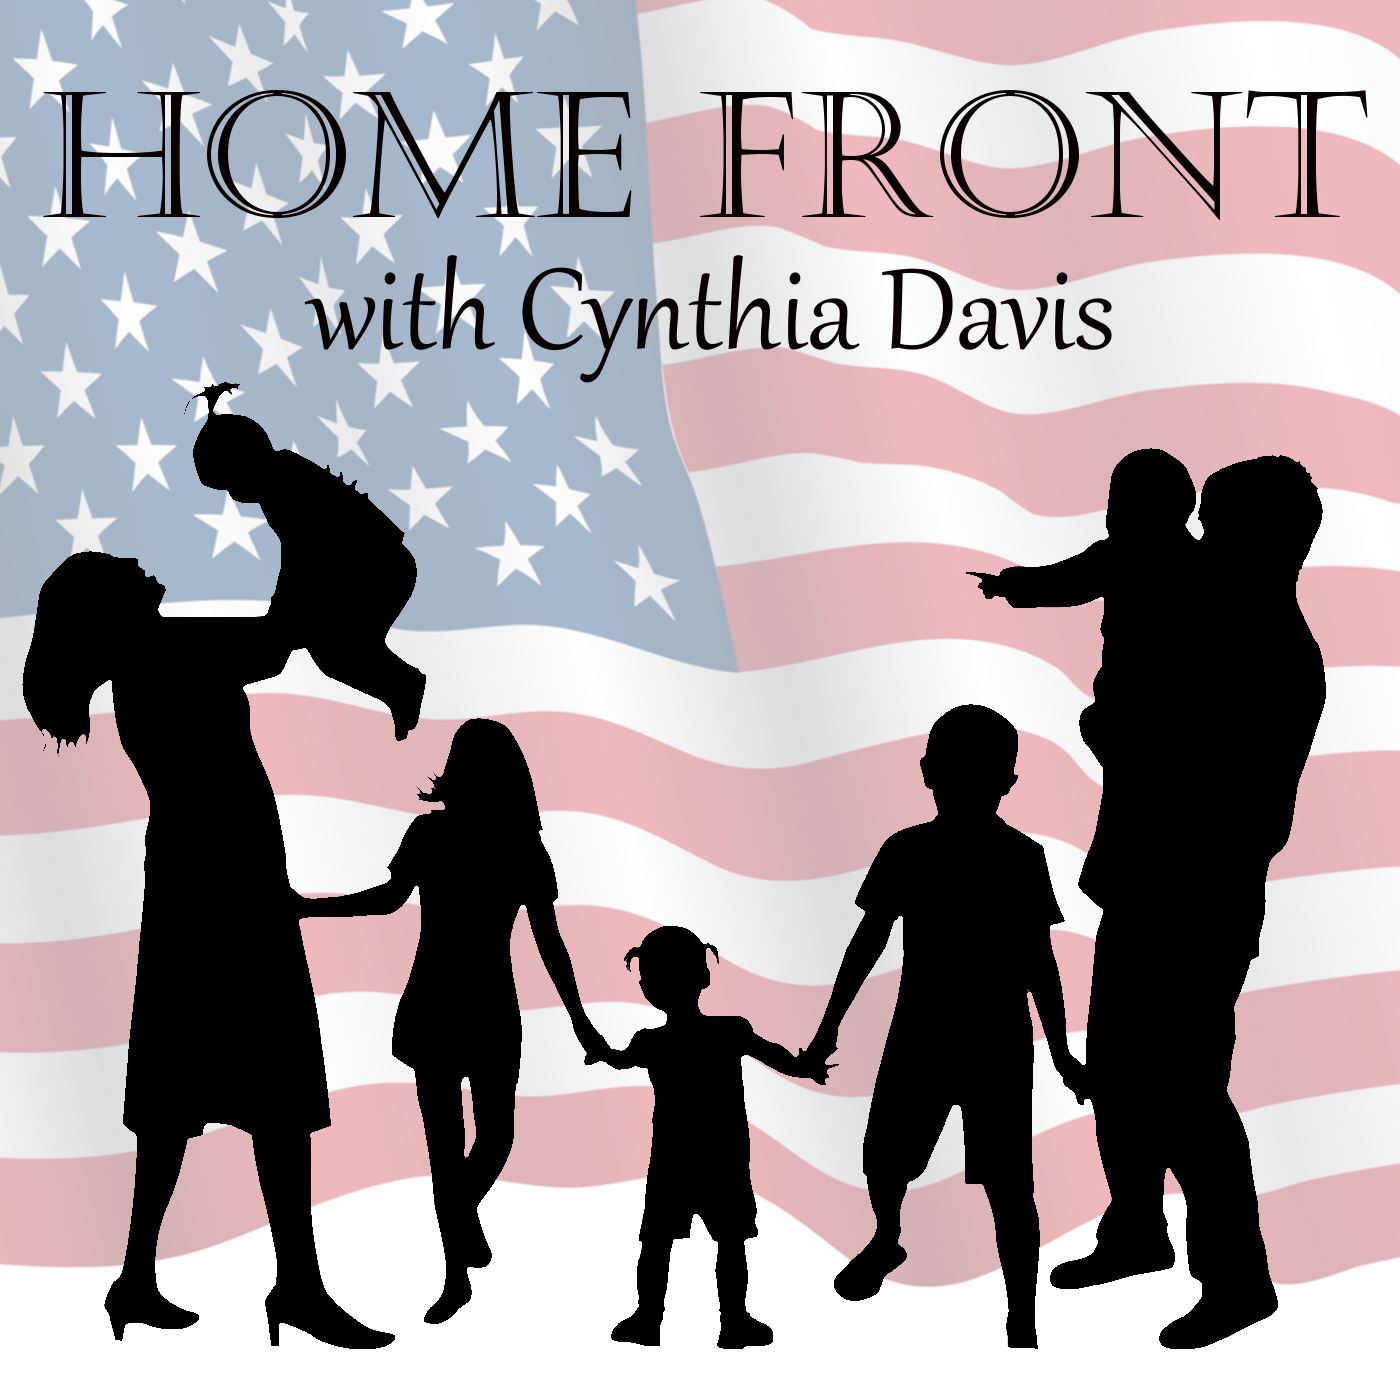 Home Front with Cynthia Davis